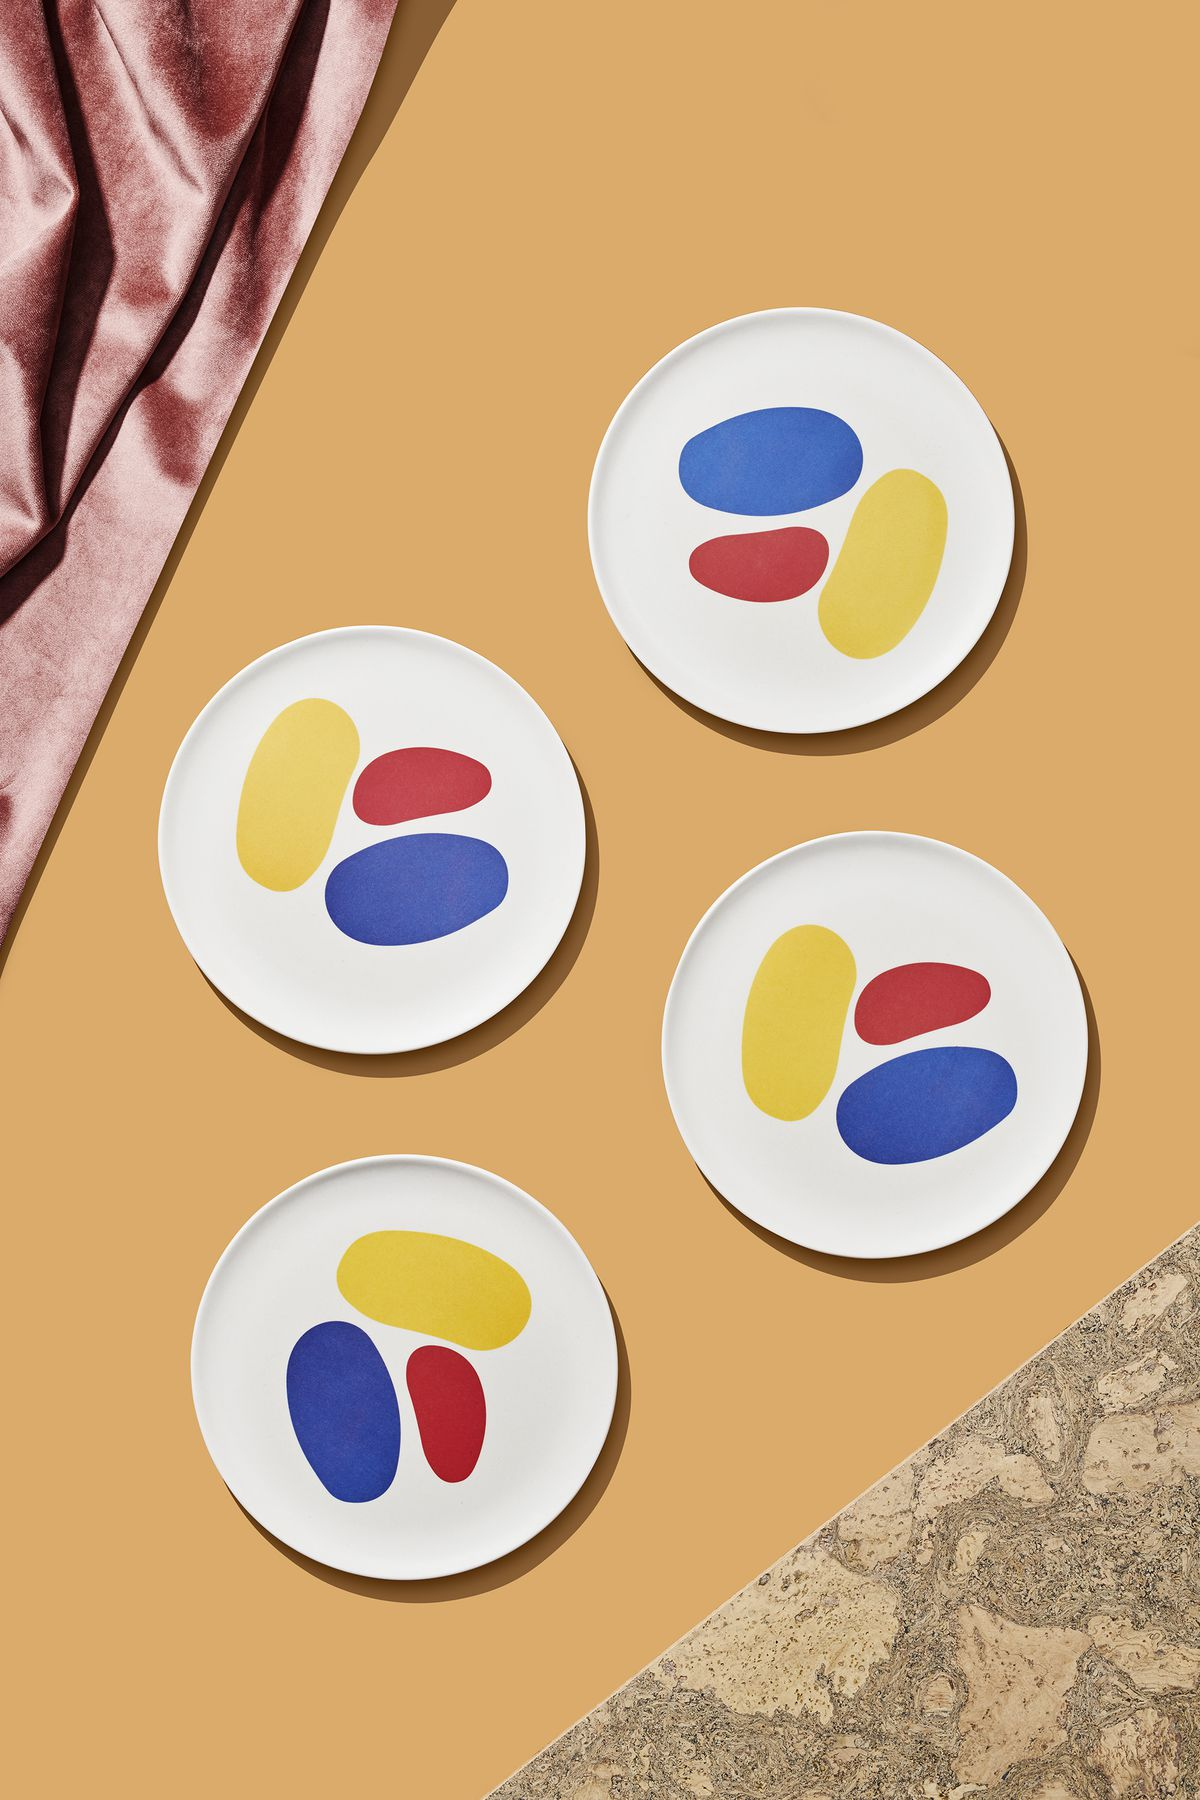 A set of four bamboo salad plates which are white with a multicolor abstract pattern. The plates are part of the 2019 Curbed Holiday Gift Guide. They are sitting on a flat yellow surface and are flanked by various design objects.